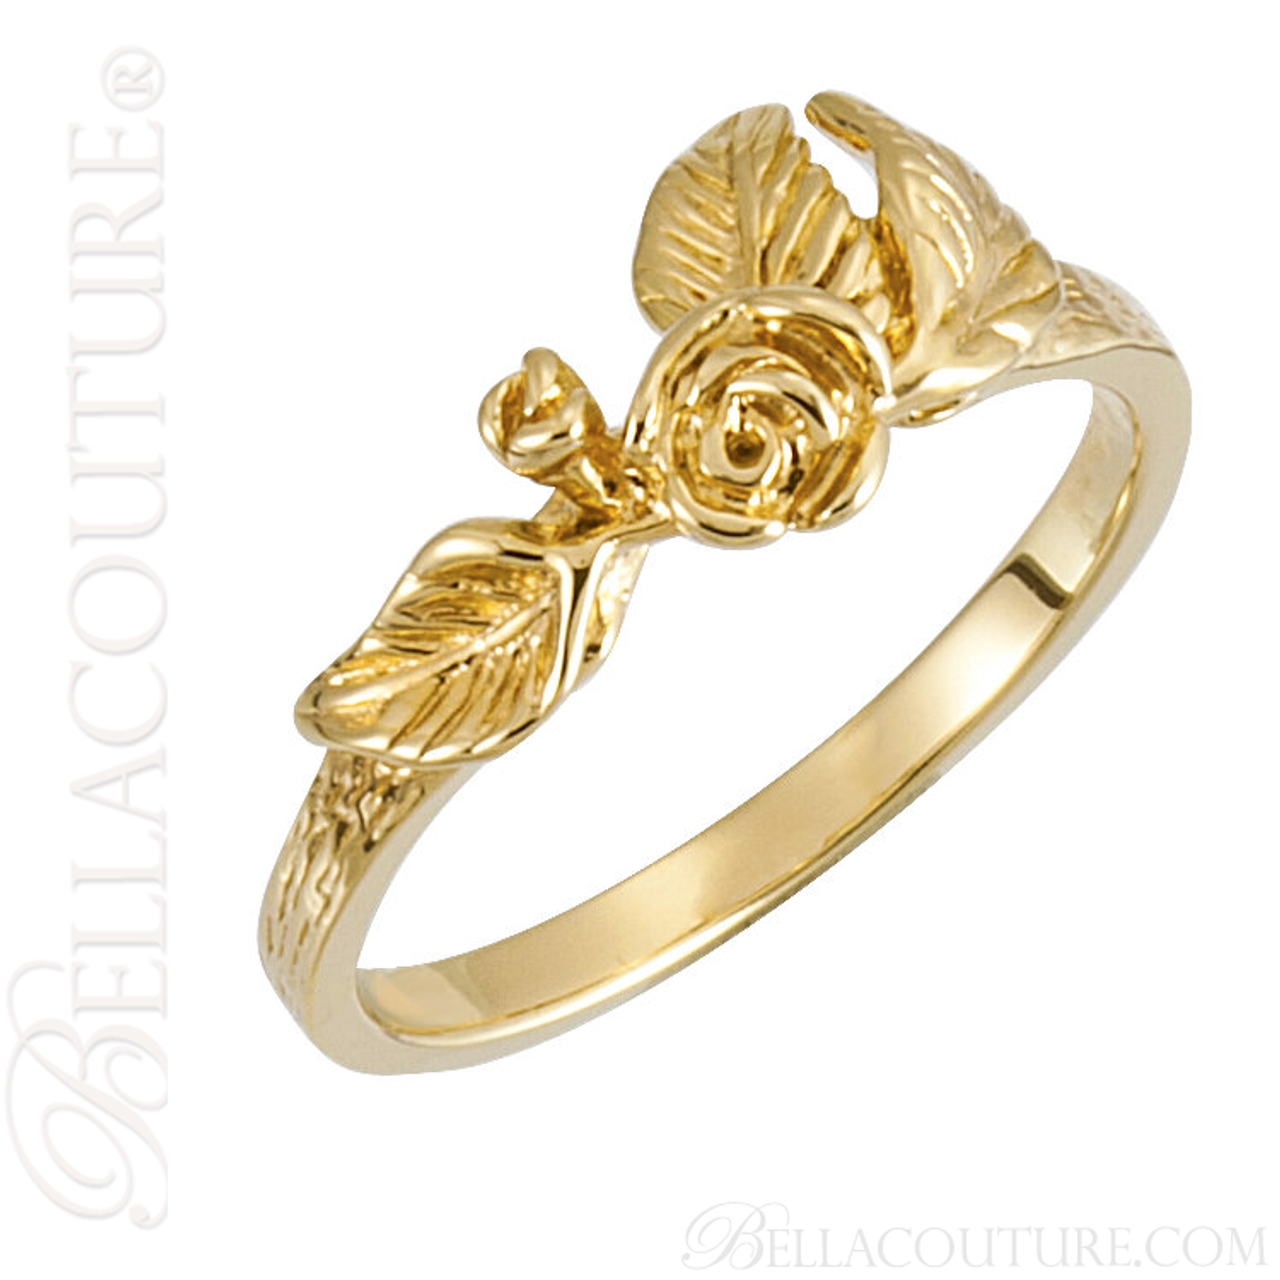 NEW) BELLA COUTURE Fine Gorgeous Sculptural Realistic Rose & Leaf ...